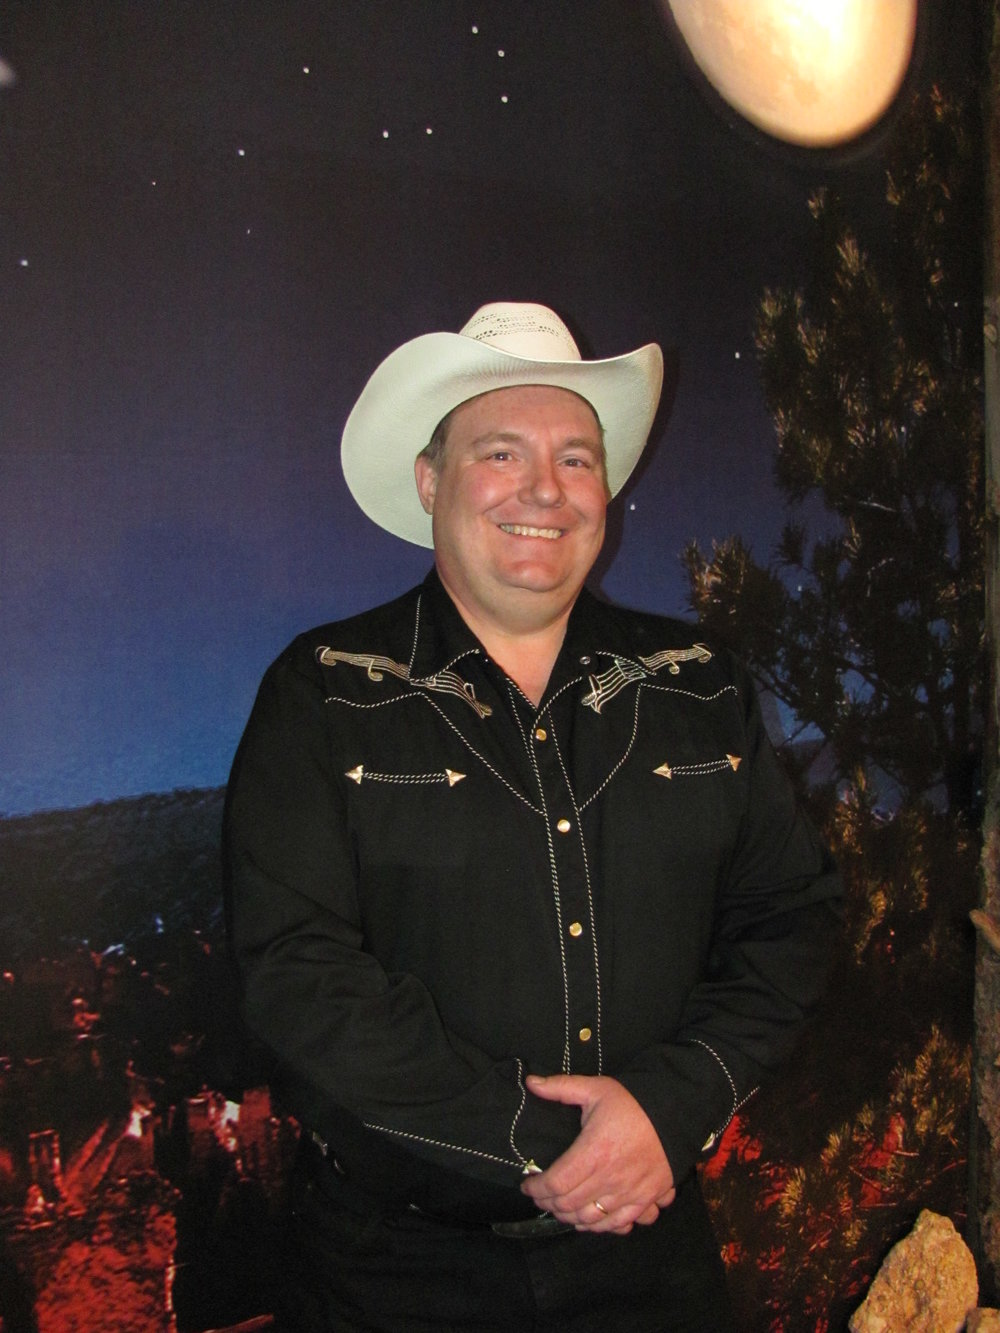 LAYNE BENSON - Wranglers.We are excited to have the talents of Layne back with the Wranglers.He adds a powerful baritone voice and a great guitar picking style to the Wranglers sound. Layne lives in LA Verkin,Utah.